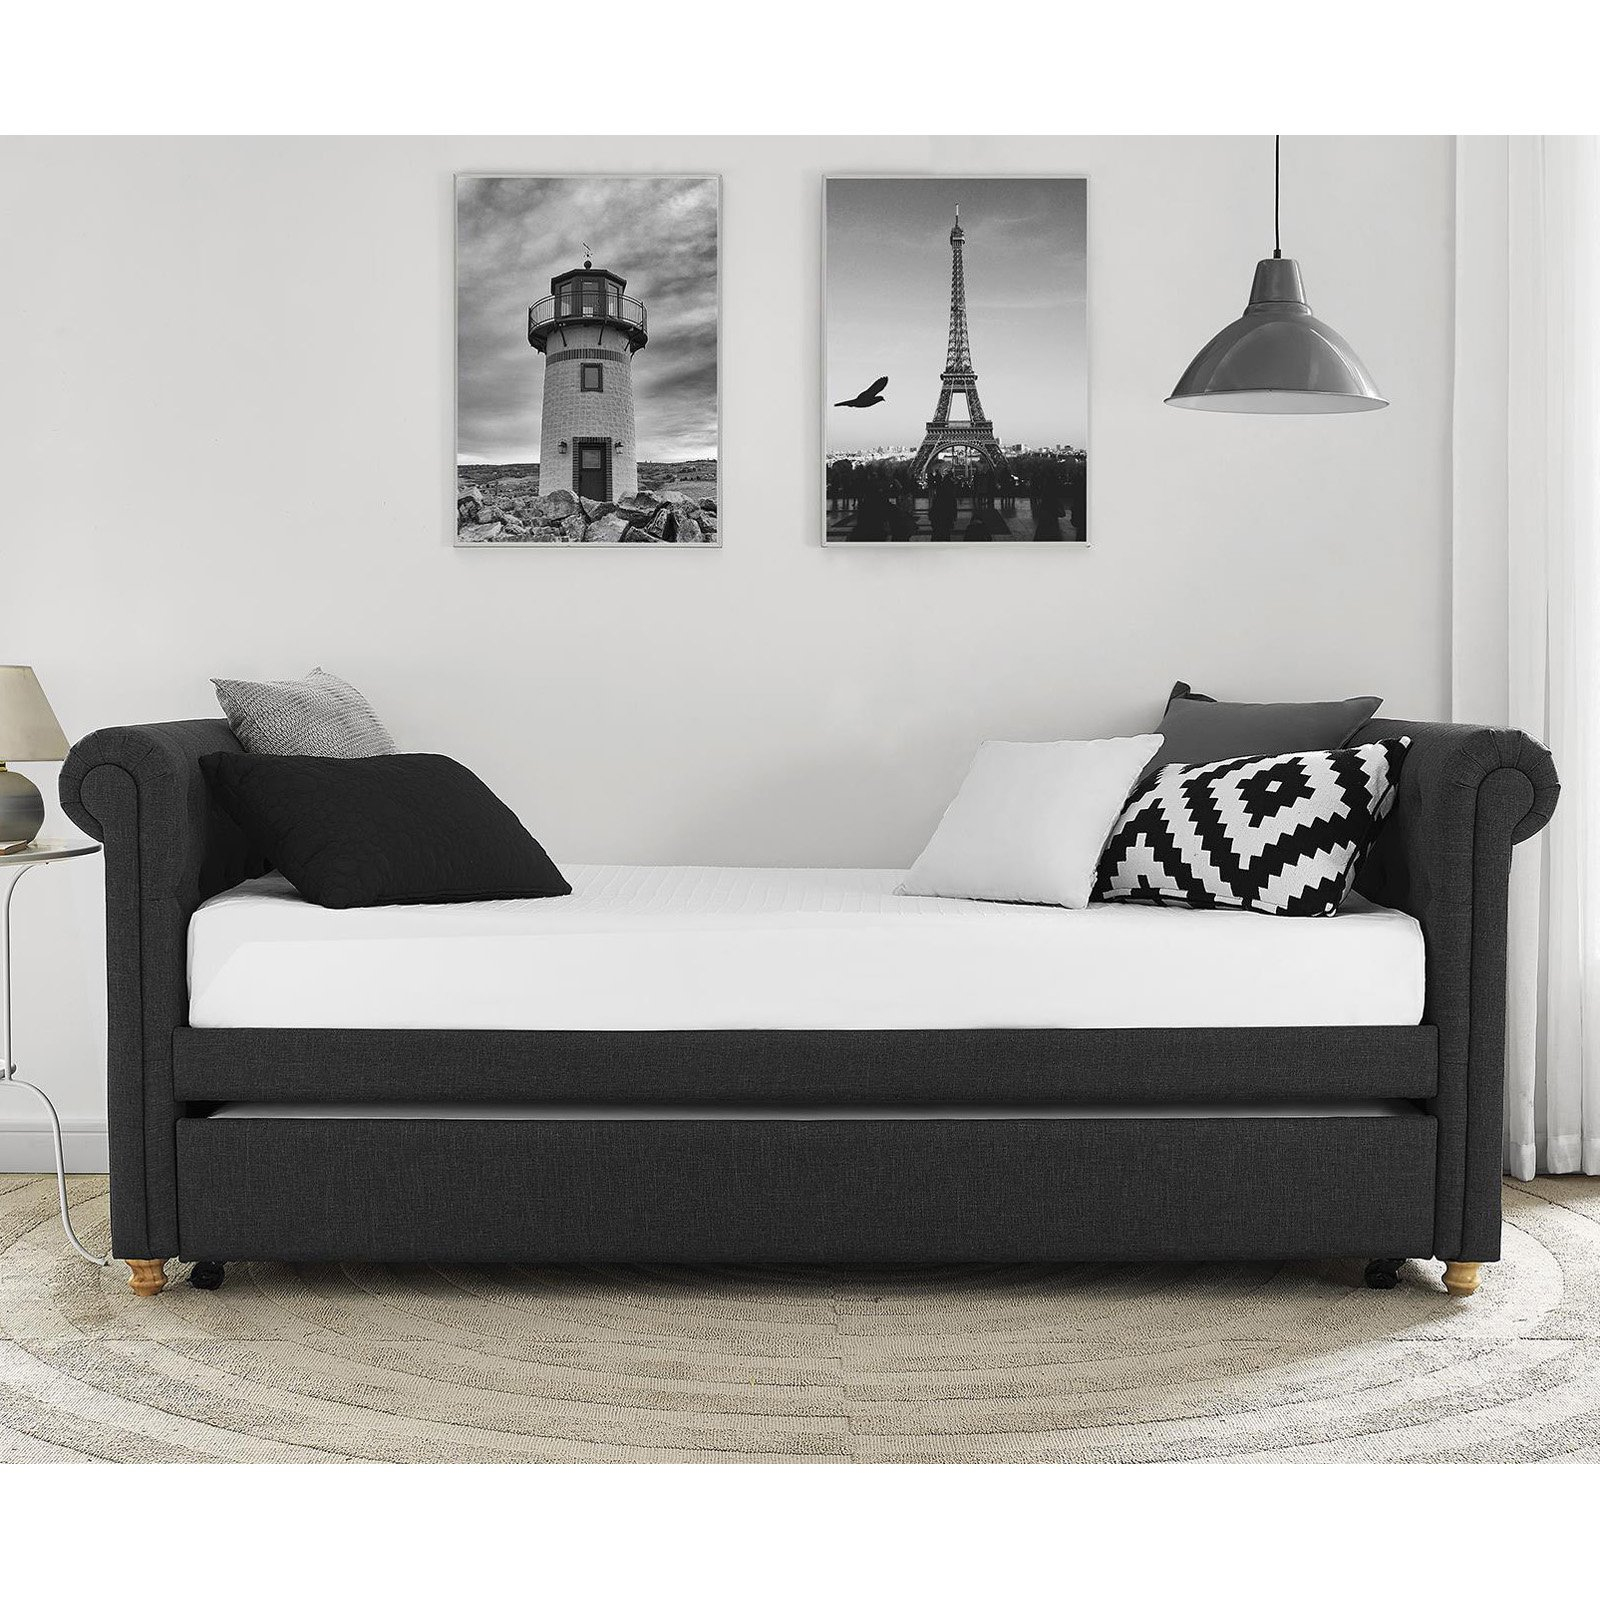 DHP Sophia Upholstered Day Bed and Trundle, Multiple Colors by Dorel Home Products